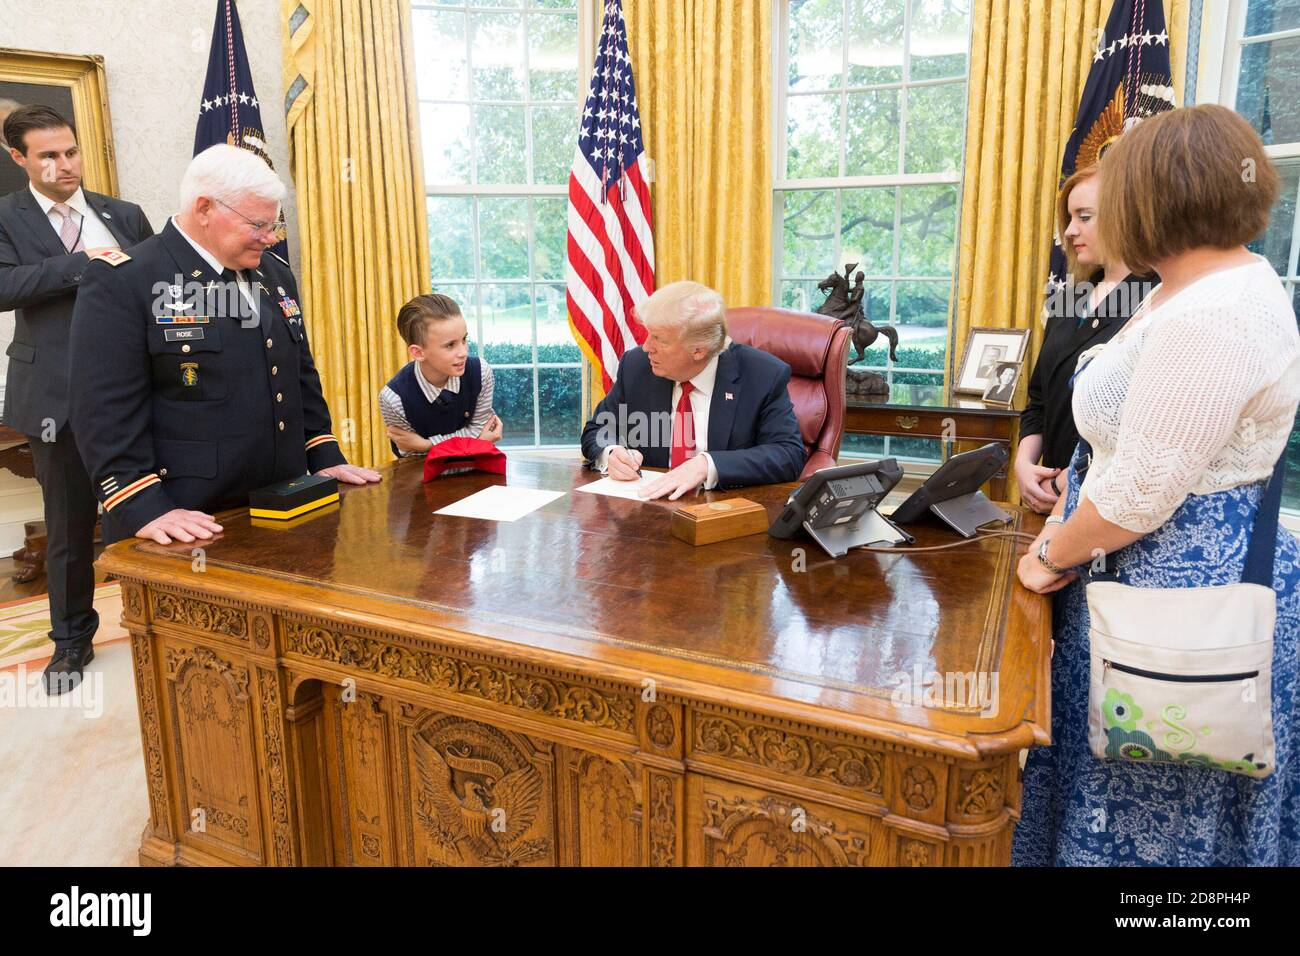 """""""President Donald J. Trump writes a note of excuse from school note, for Medal of Honor recipient retired U.S. Army Capt. Gary M. Rose grandson, Christian, left, during a family visit in the Oval Room at the White House in Washington, D.C. 